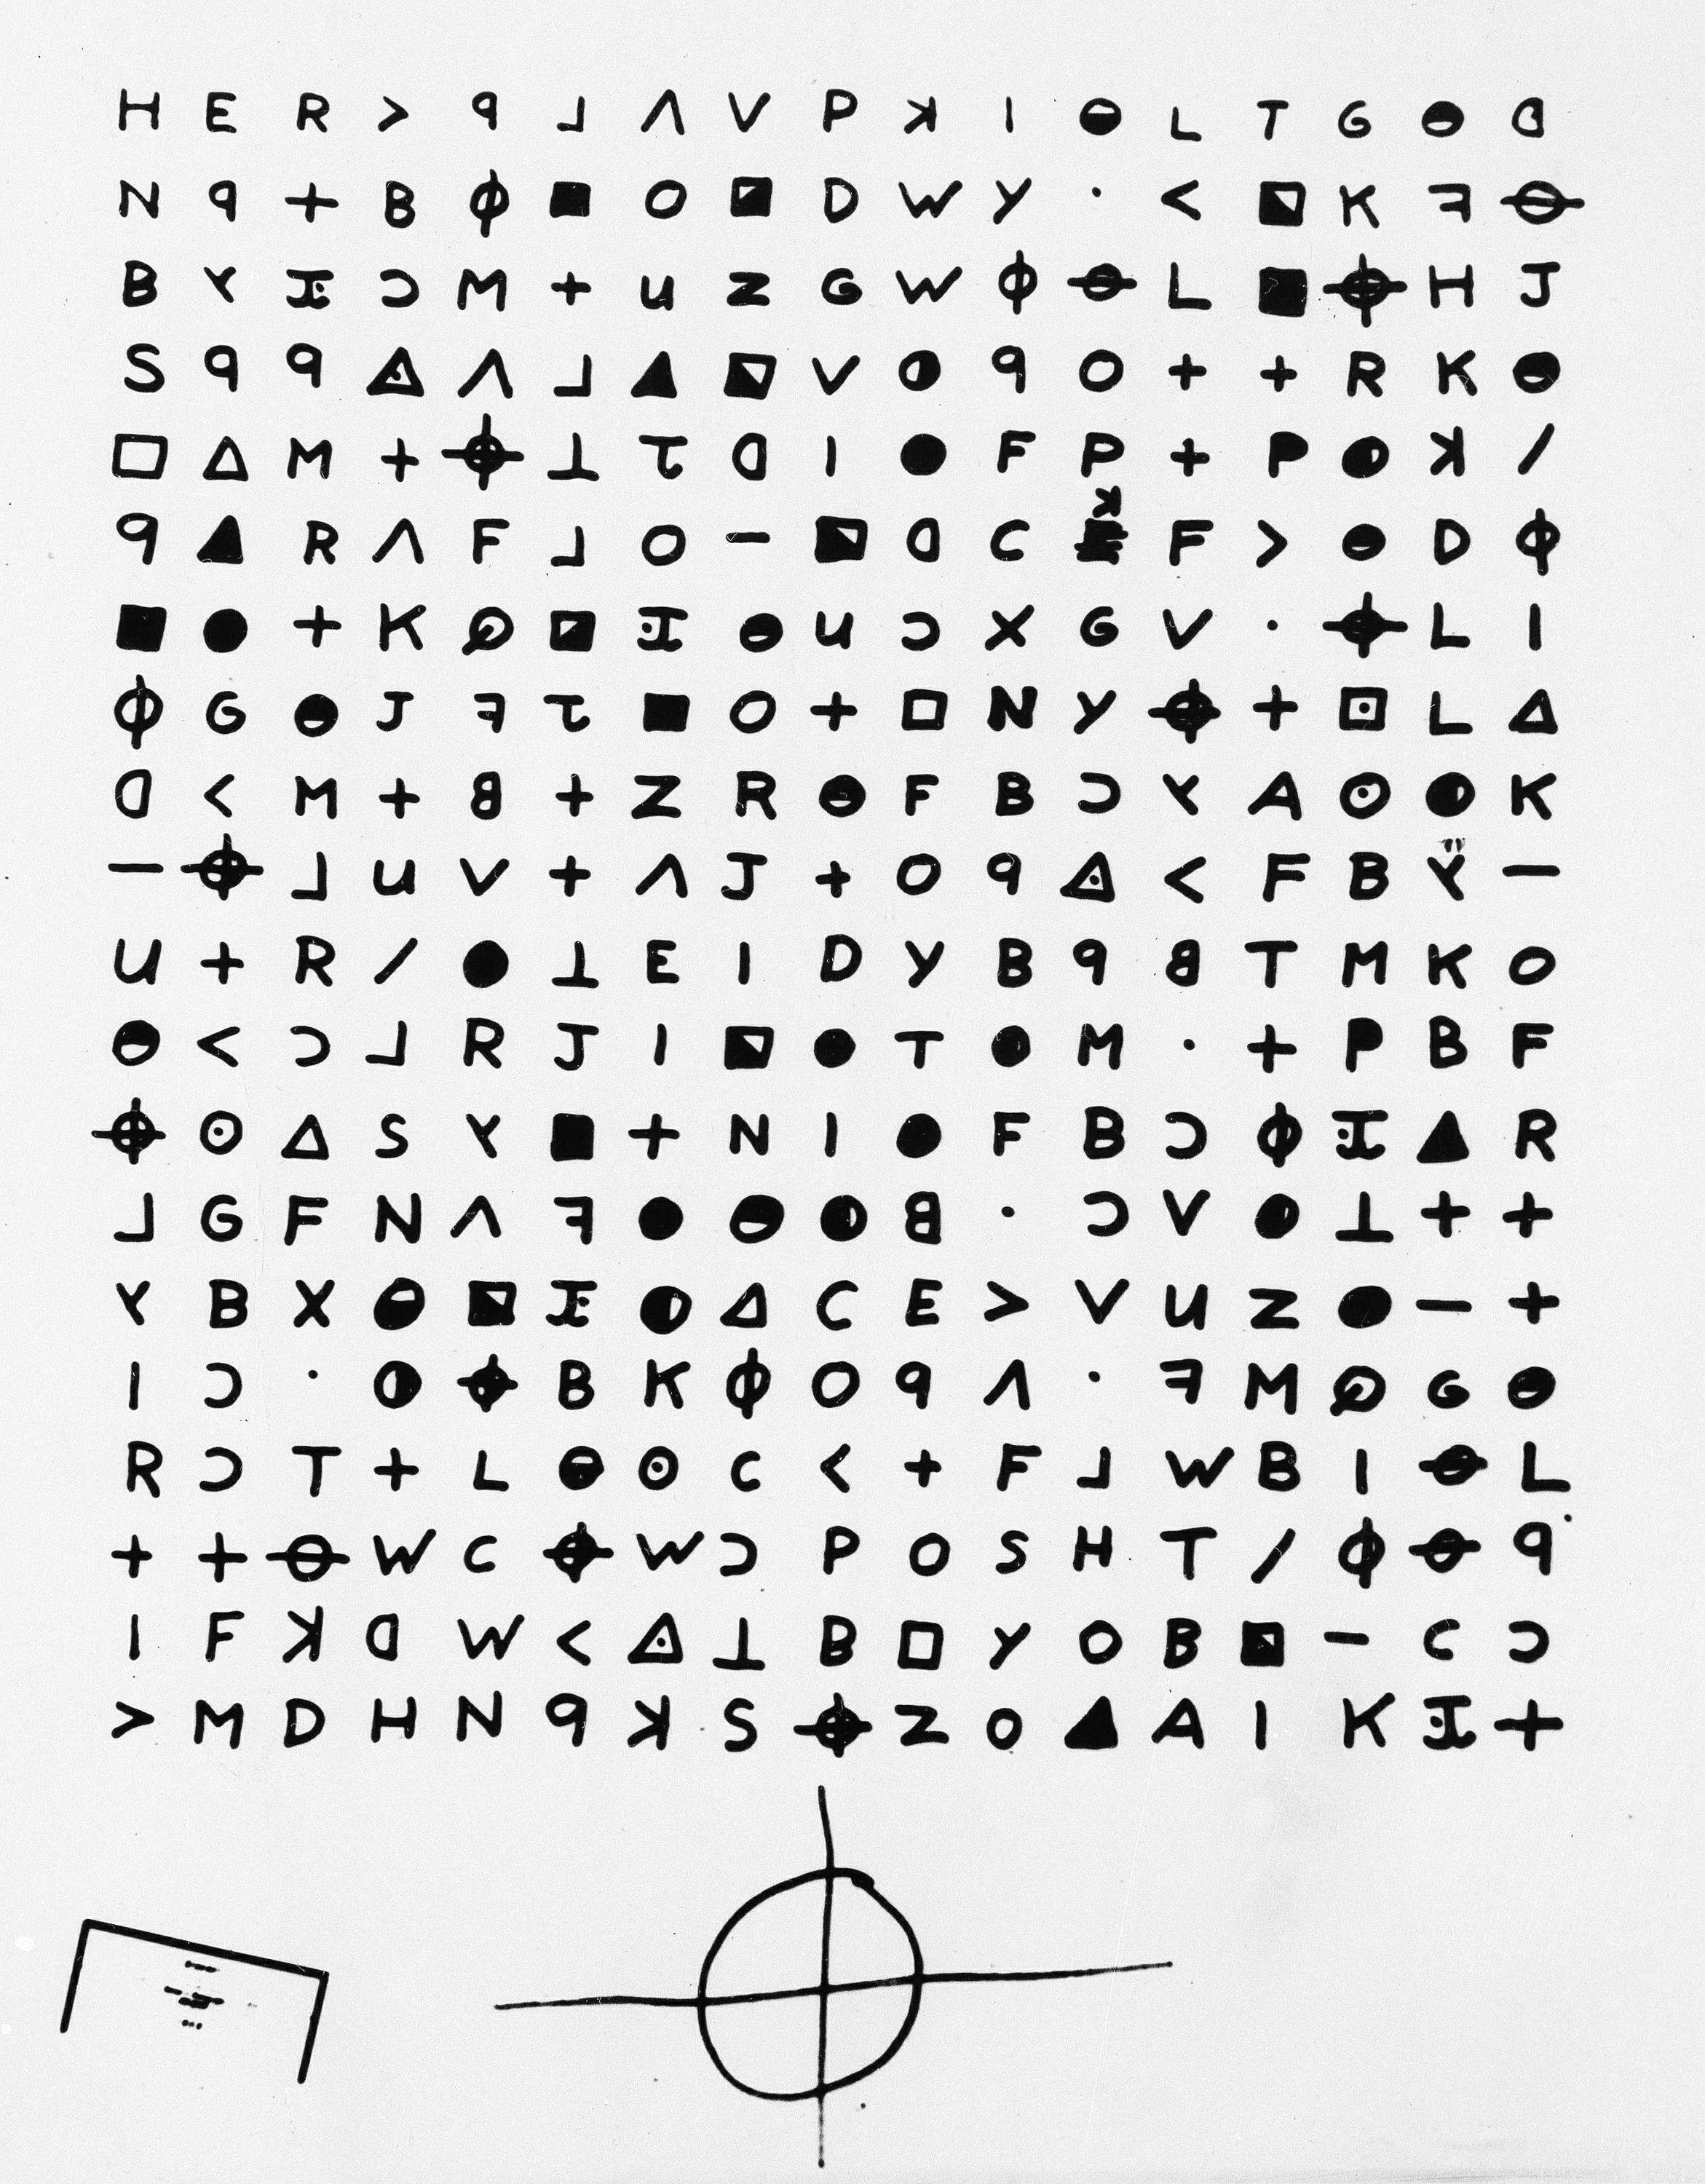 Zodiac cipher solved 51 years after it was sent to newspaper - Associated Press